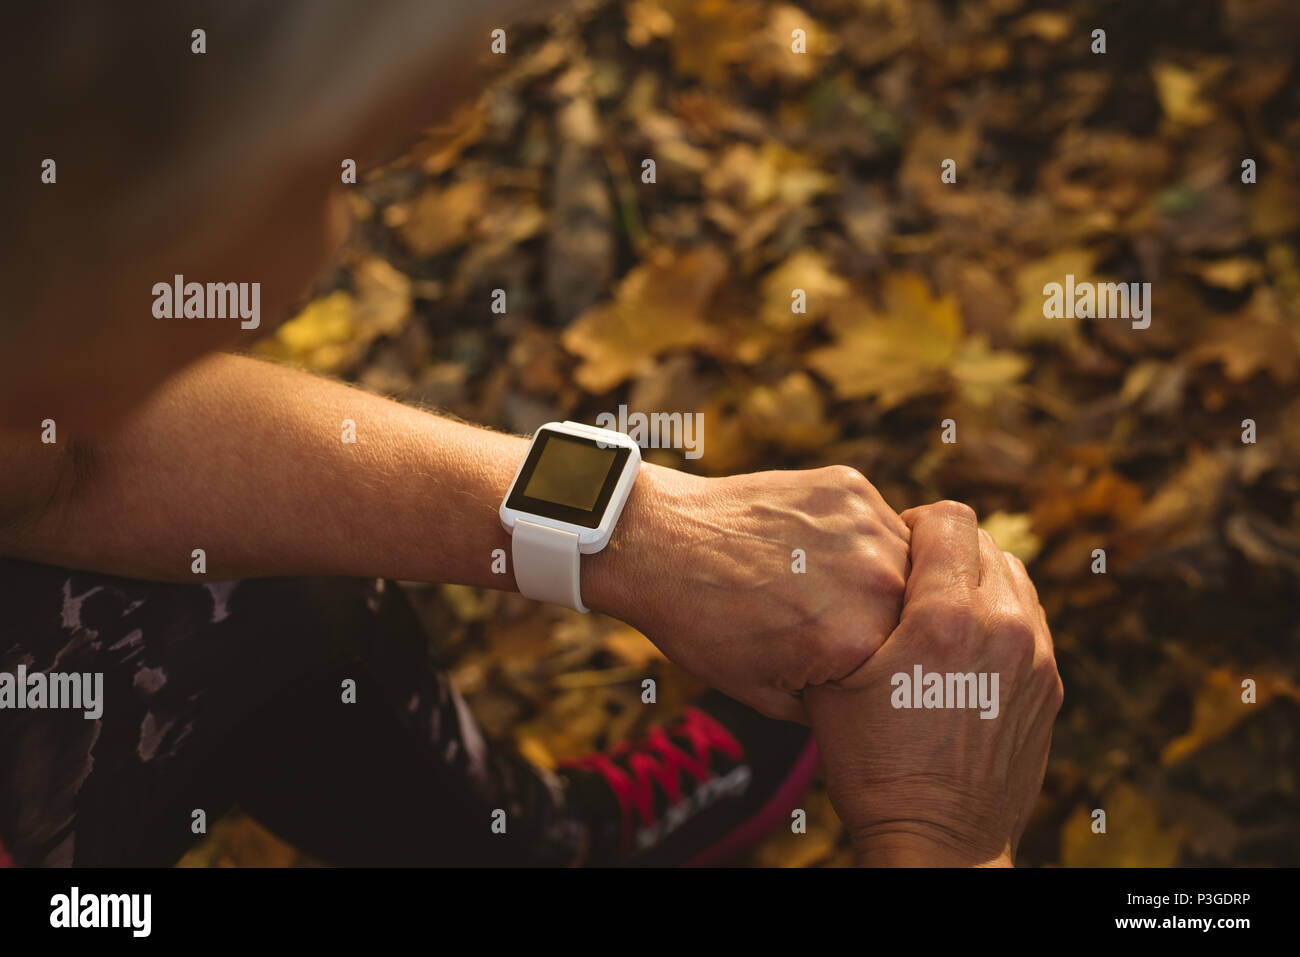 Senior woman using a smart watch in a park - Stock Image